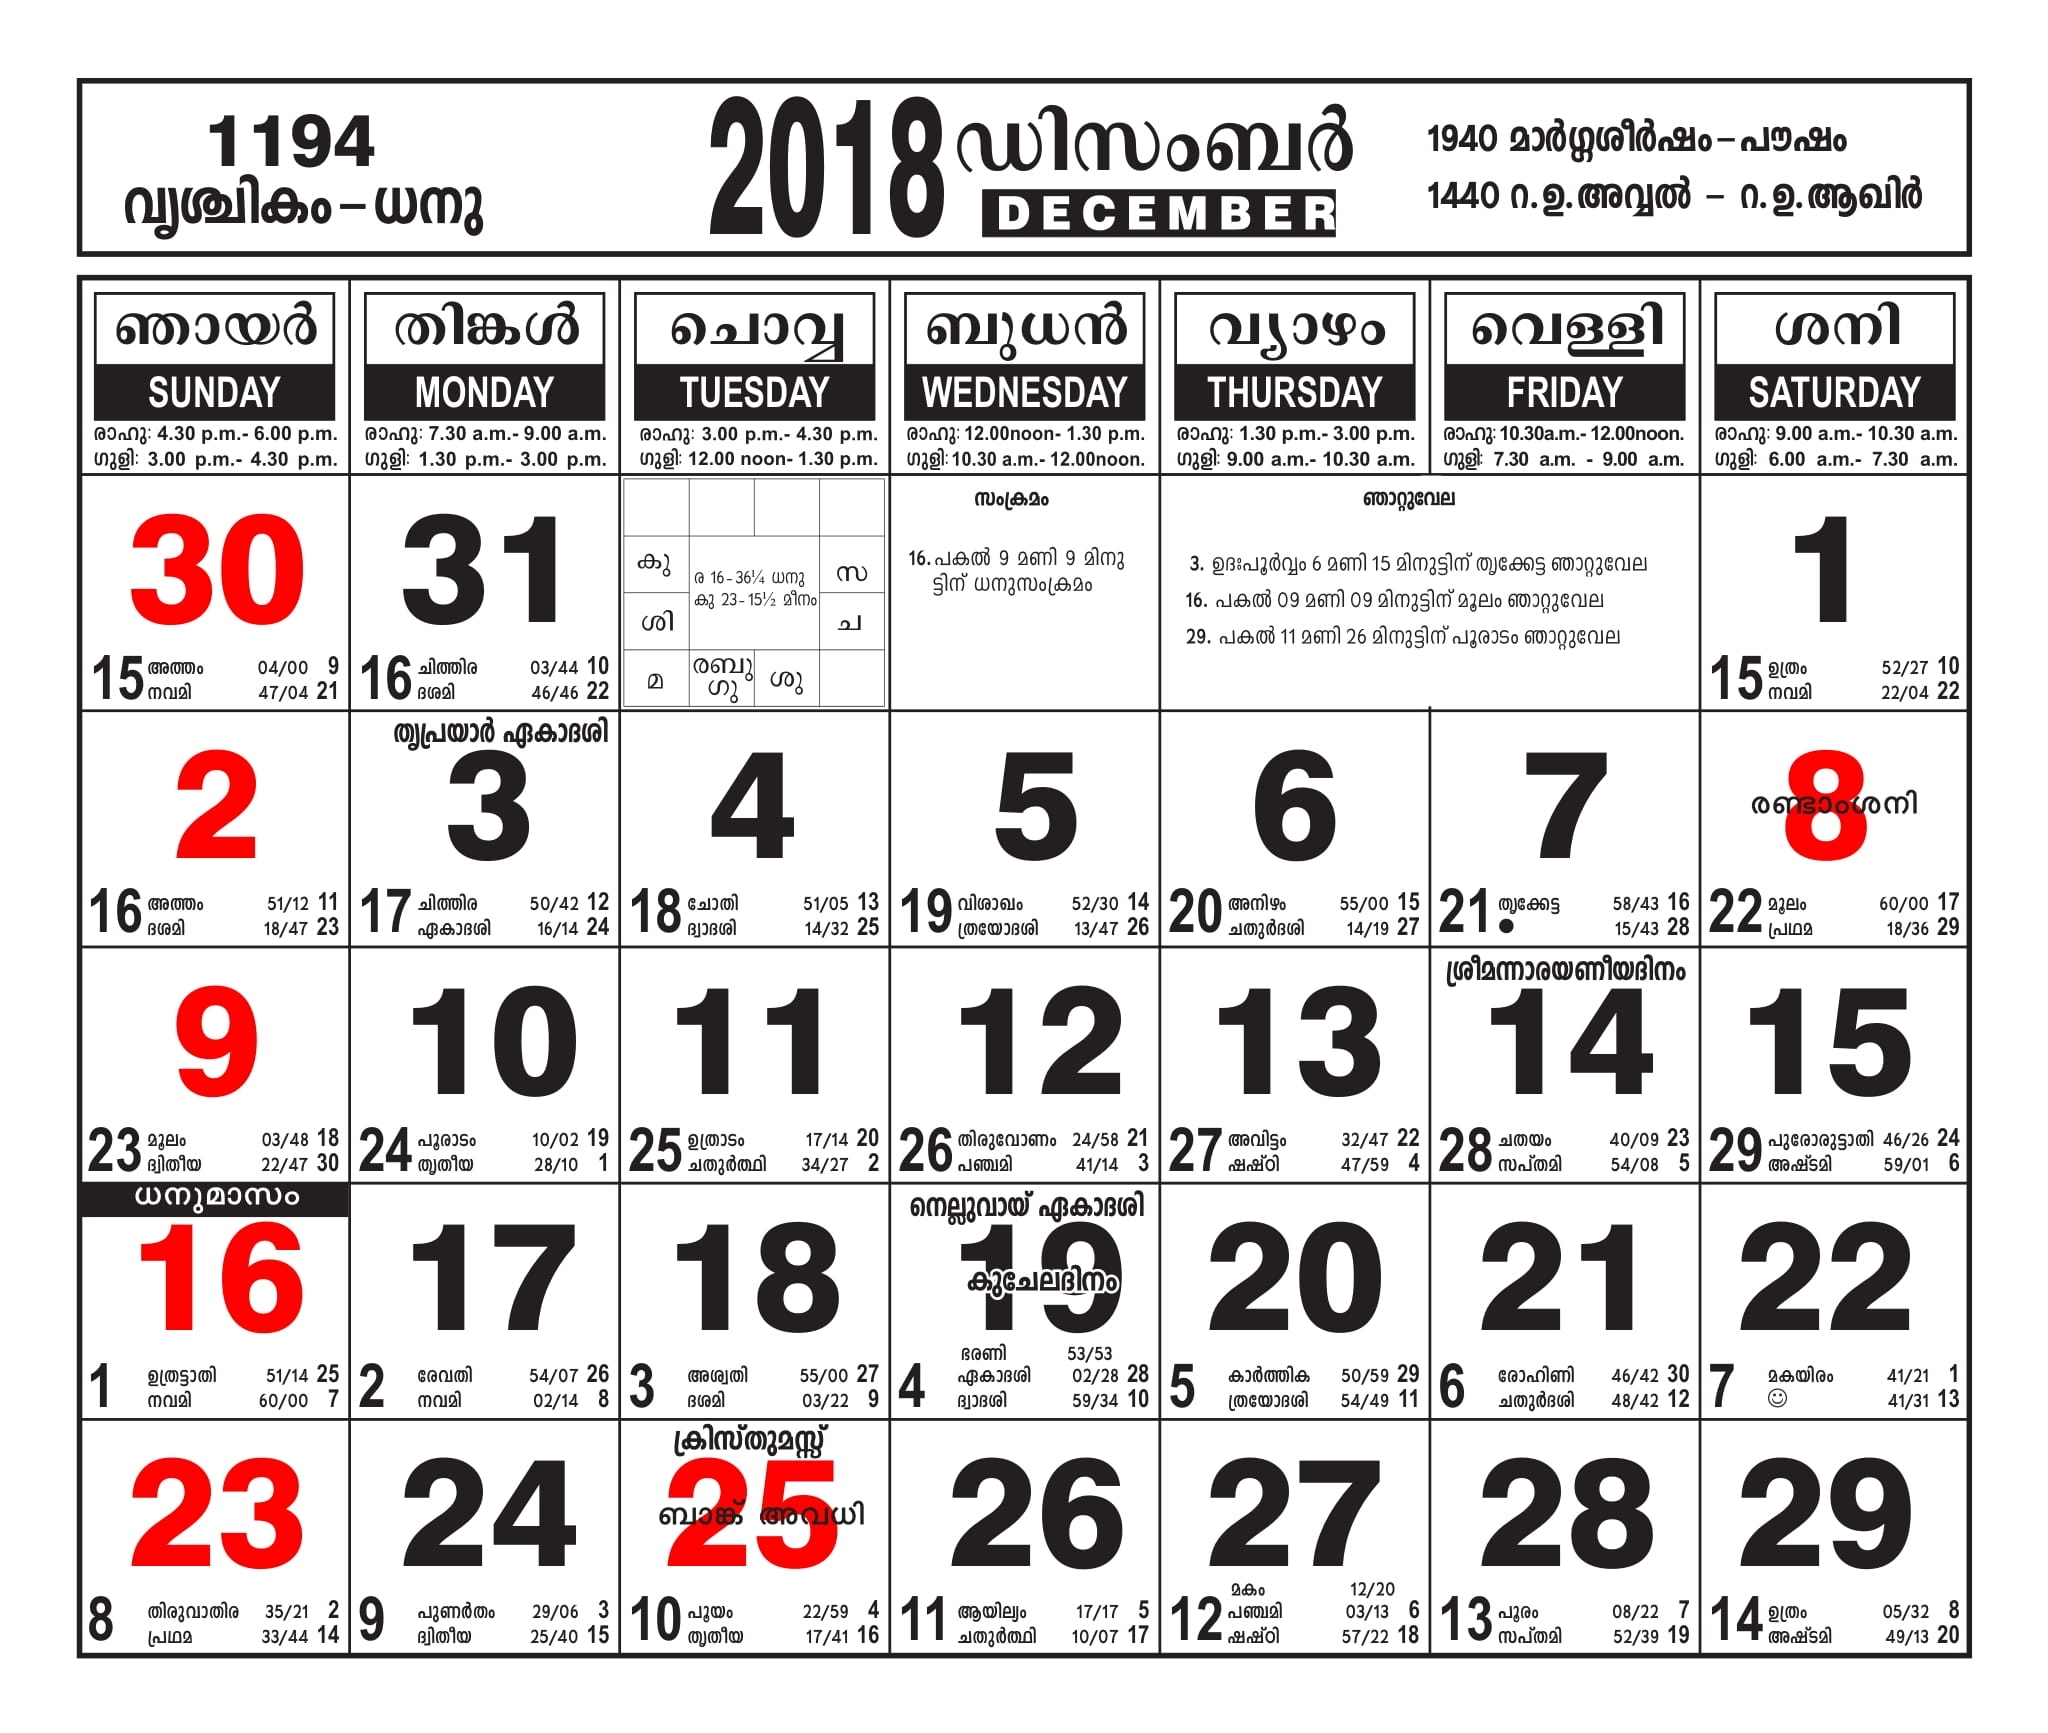 Take Malayala Manorama Calendar December 2018